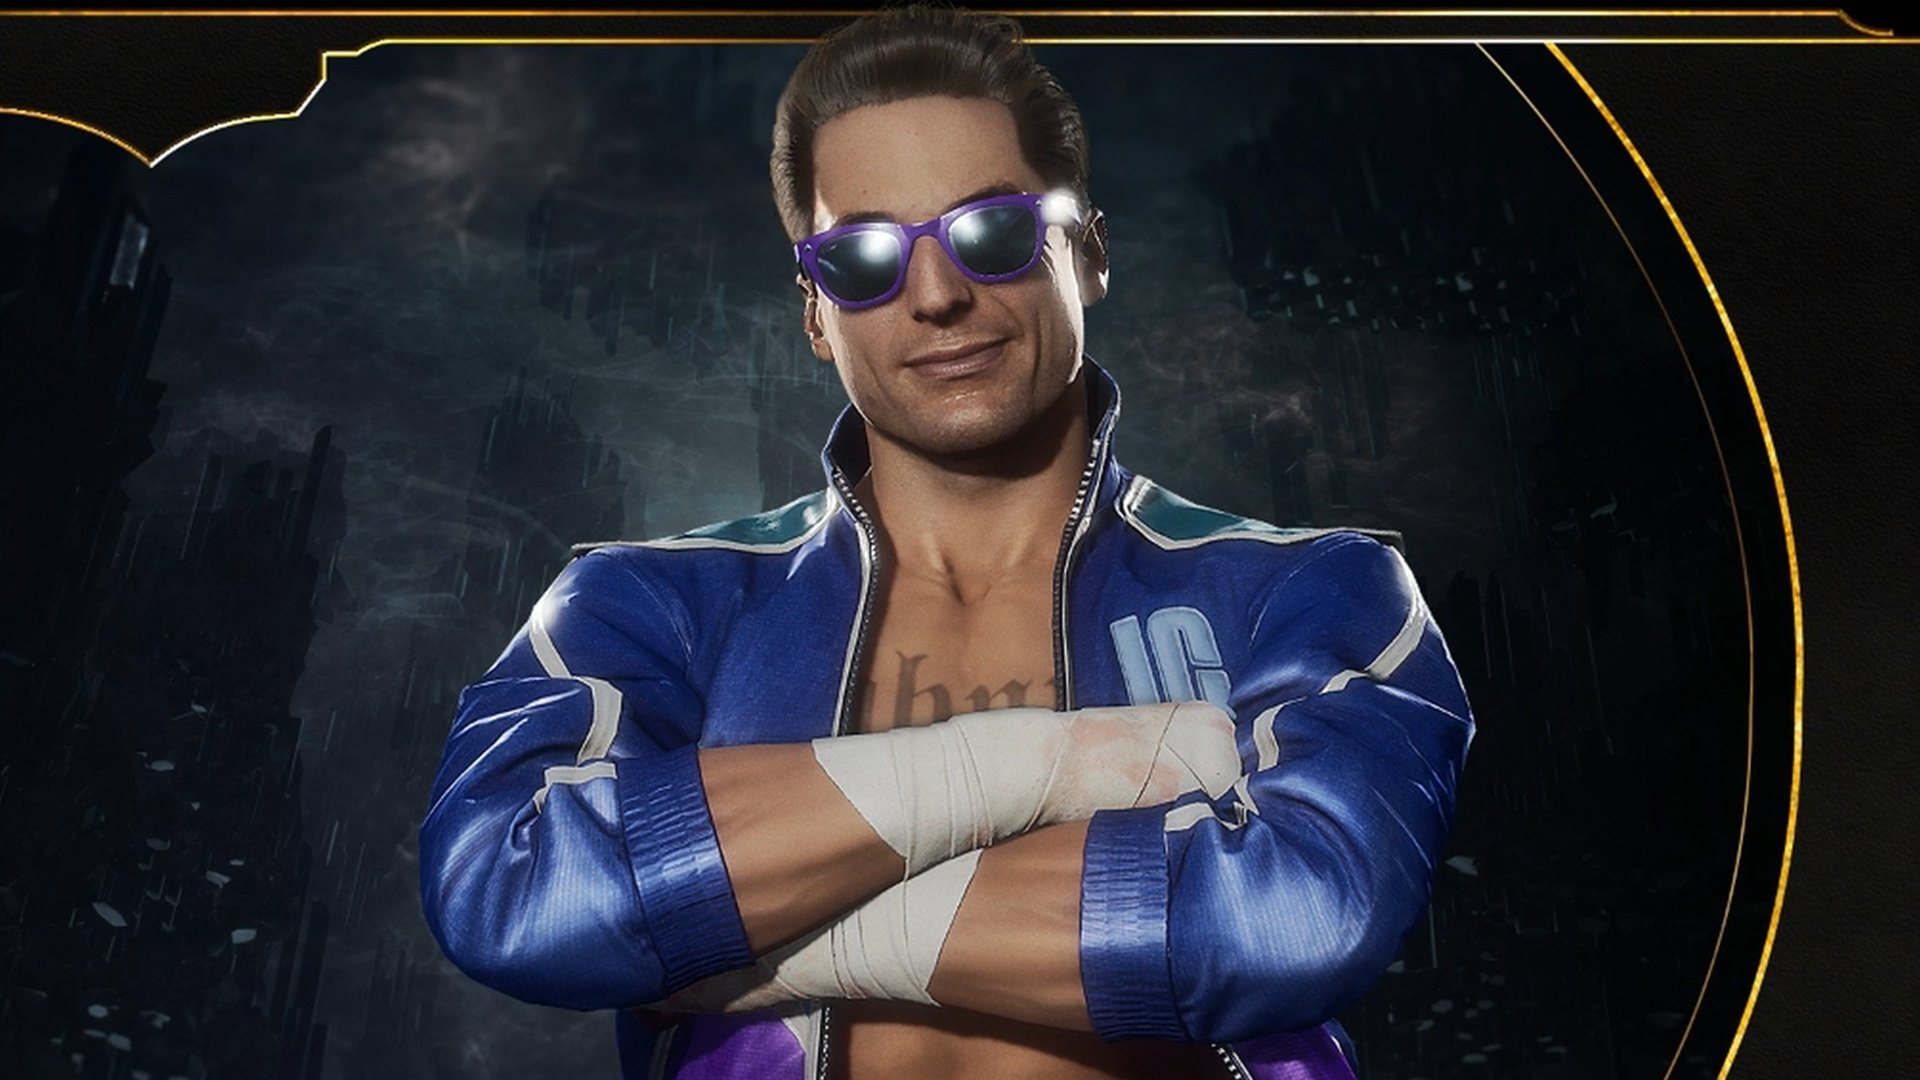 Johnny Cage May Take The Cake For Best Mortal Kombat 11